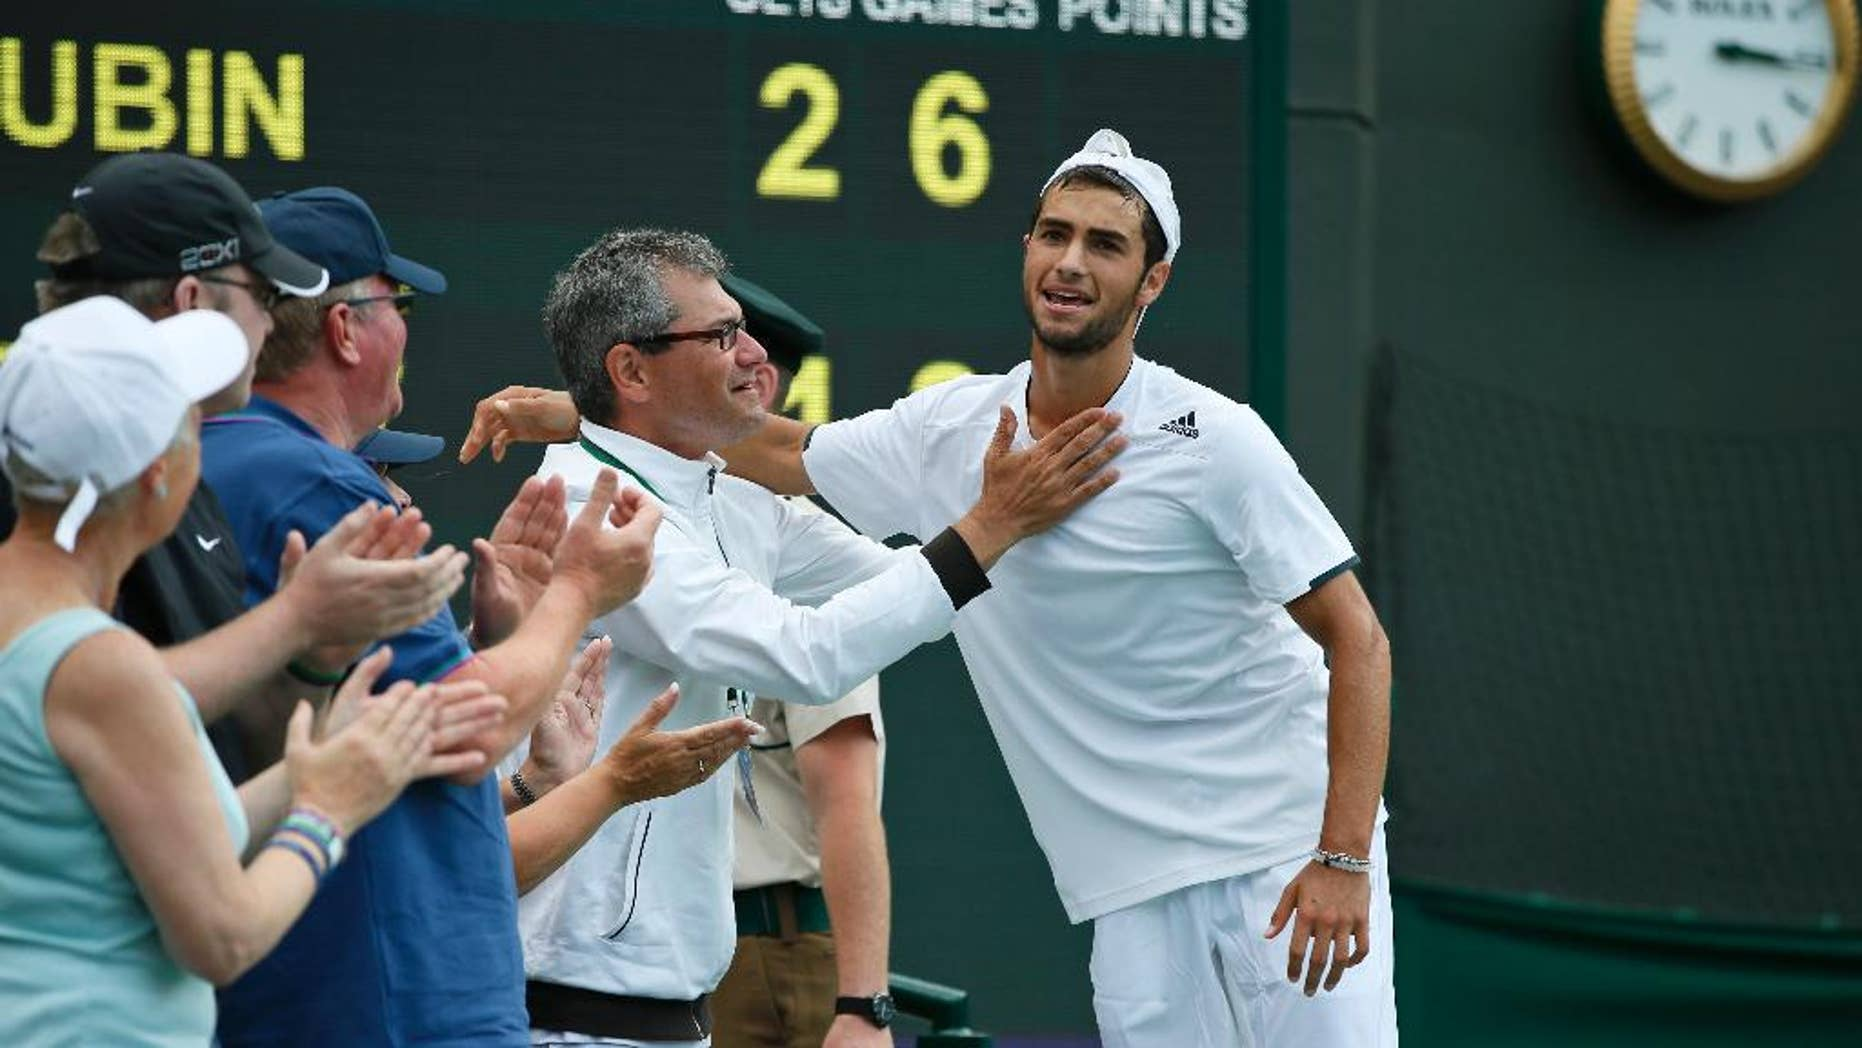 Noah Rubin of the U.S., right, is congratulated after defeating Stefan Kozlov of the U.S in the boys' singles final at the All England Lawn Tennis Championships in Wimbledon, London, Sunday July 6, 2014. (AP Photo/Alastair Grant)